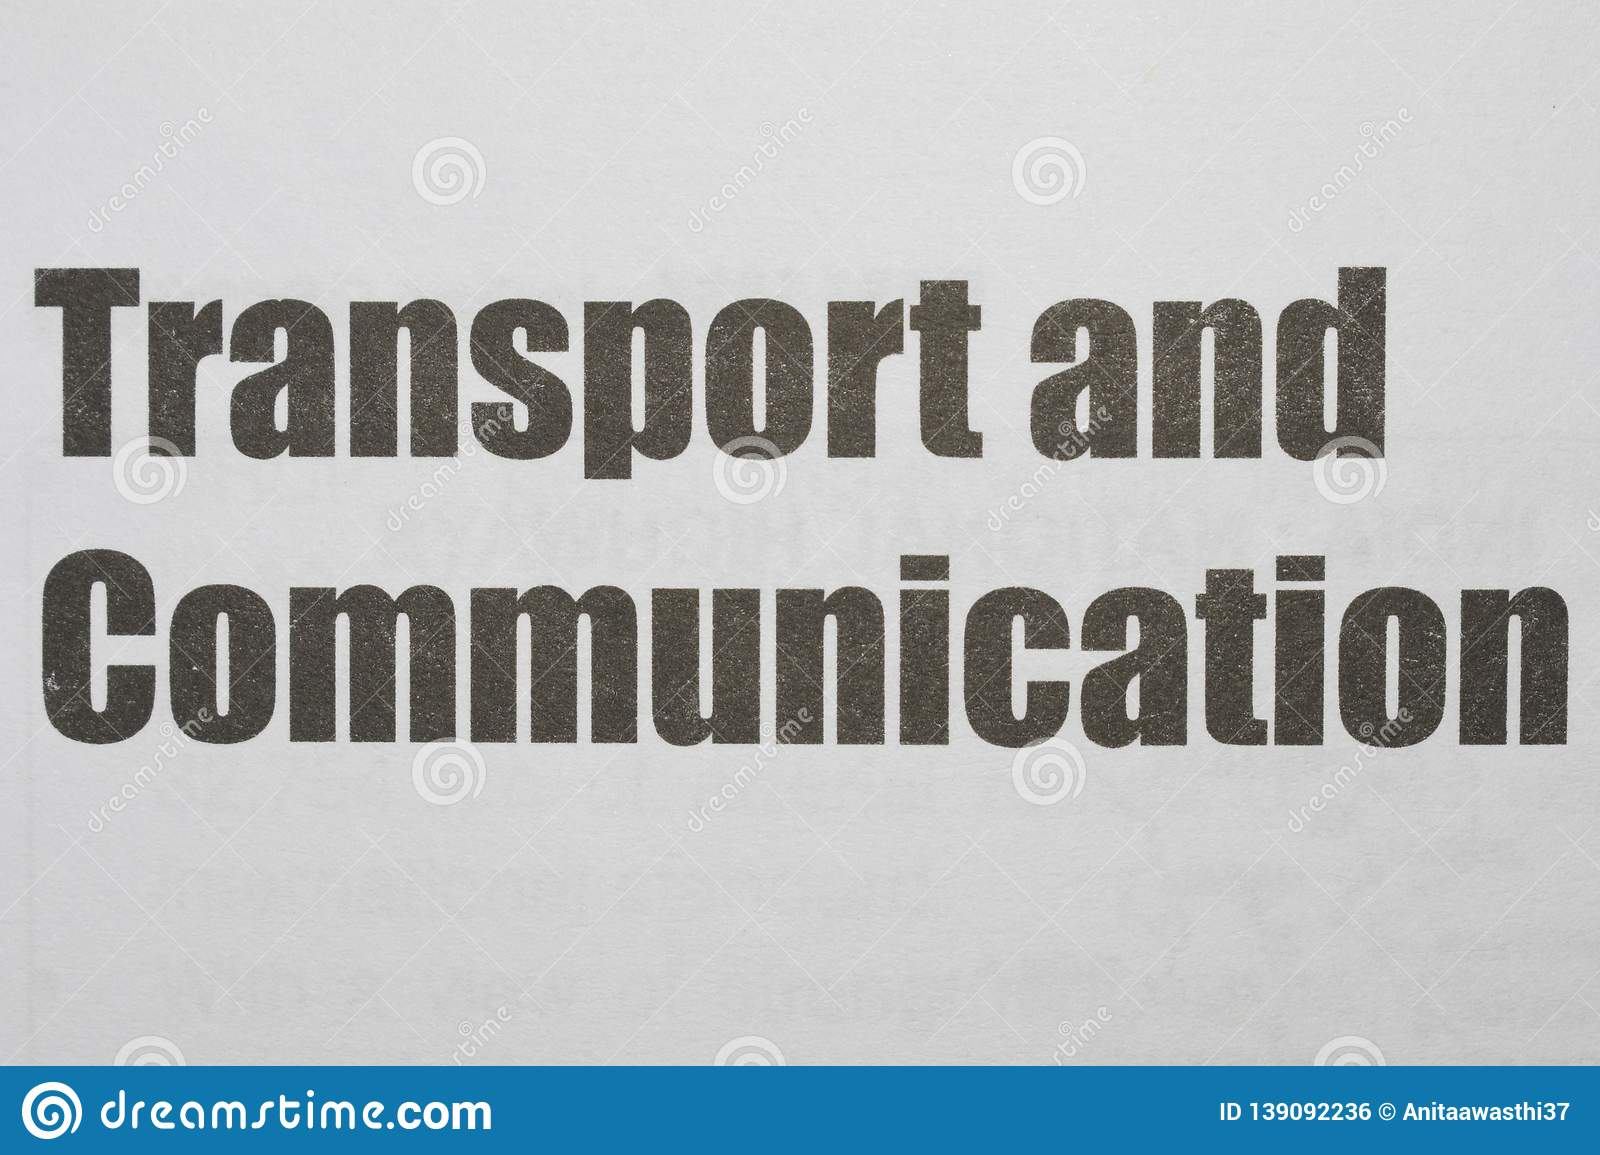 Transport and Communication Printed on a white background with black ink